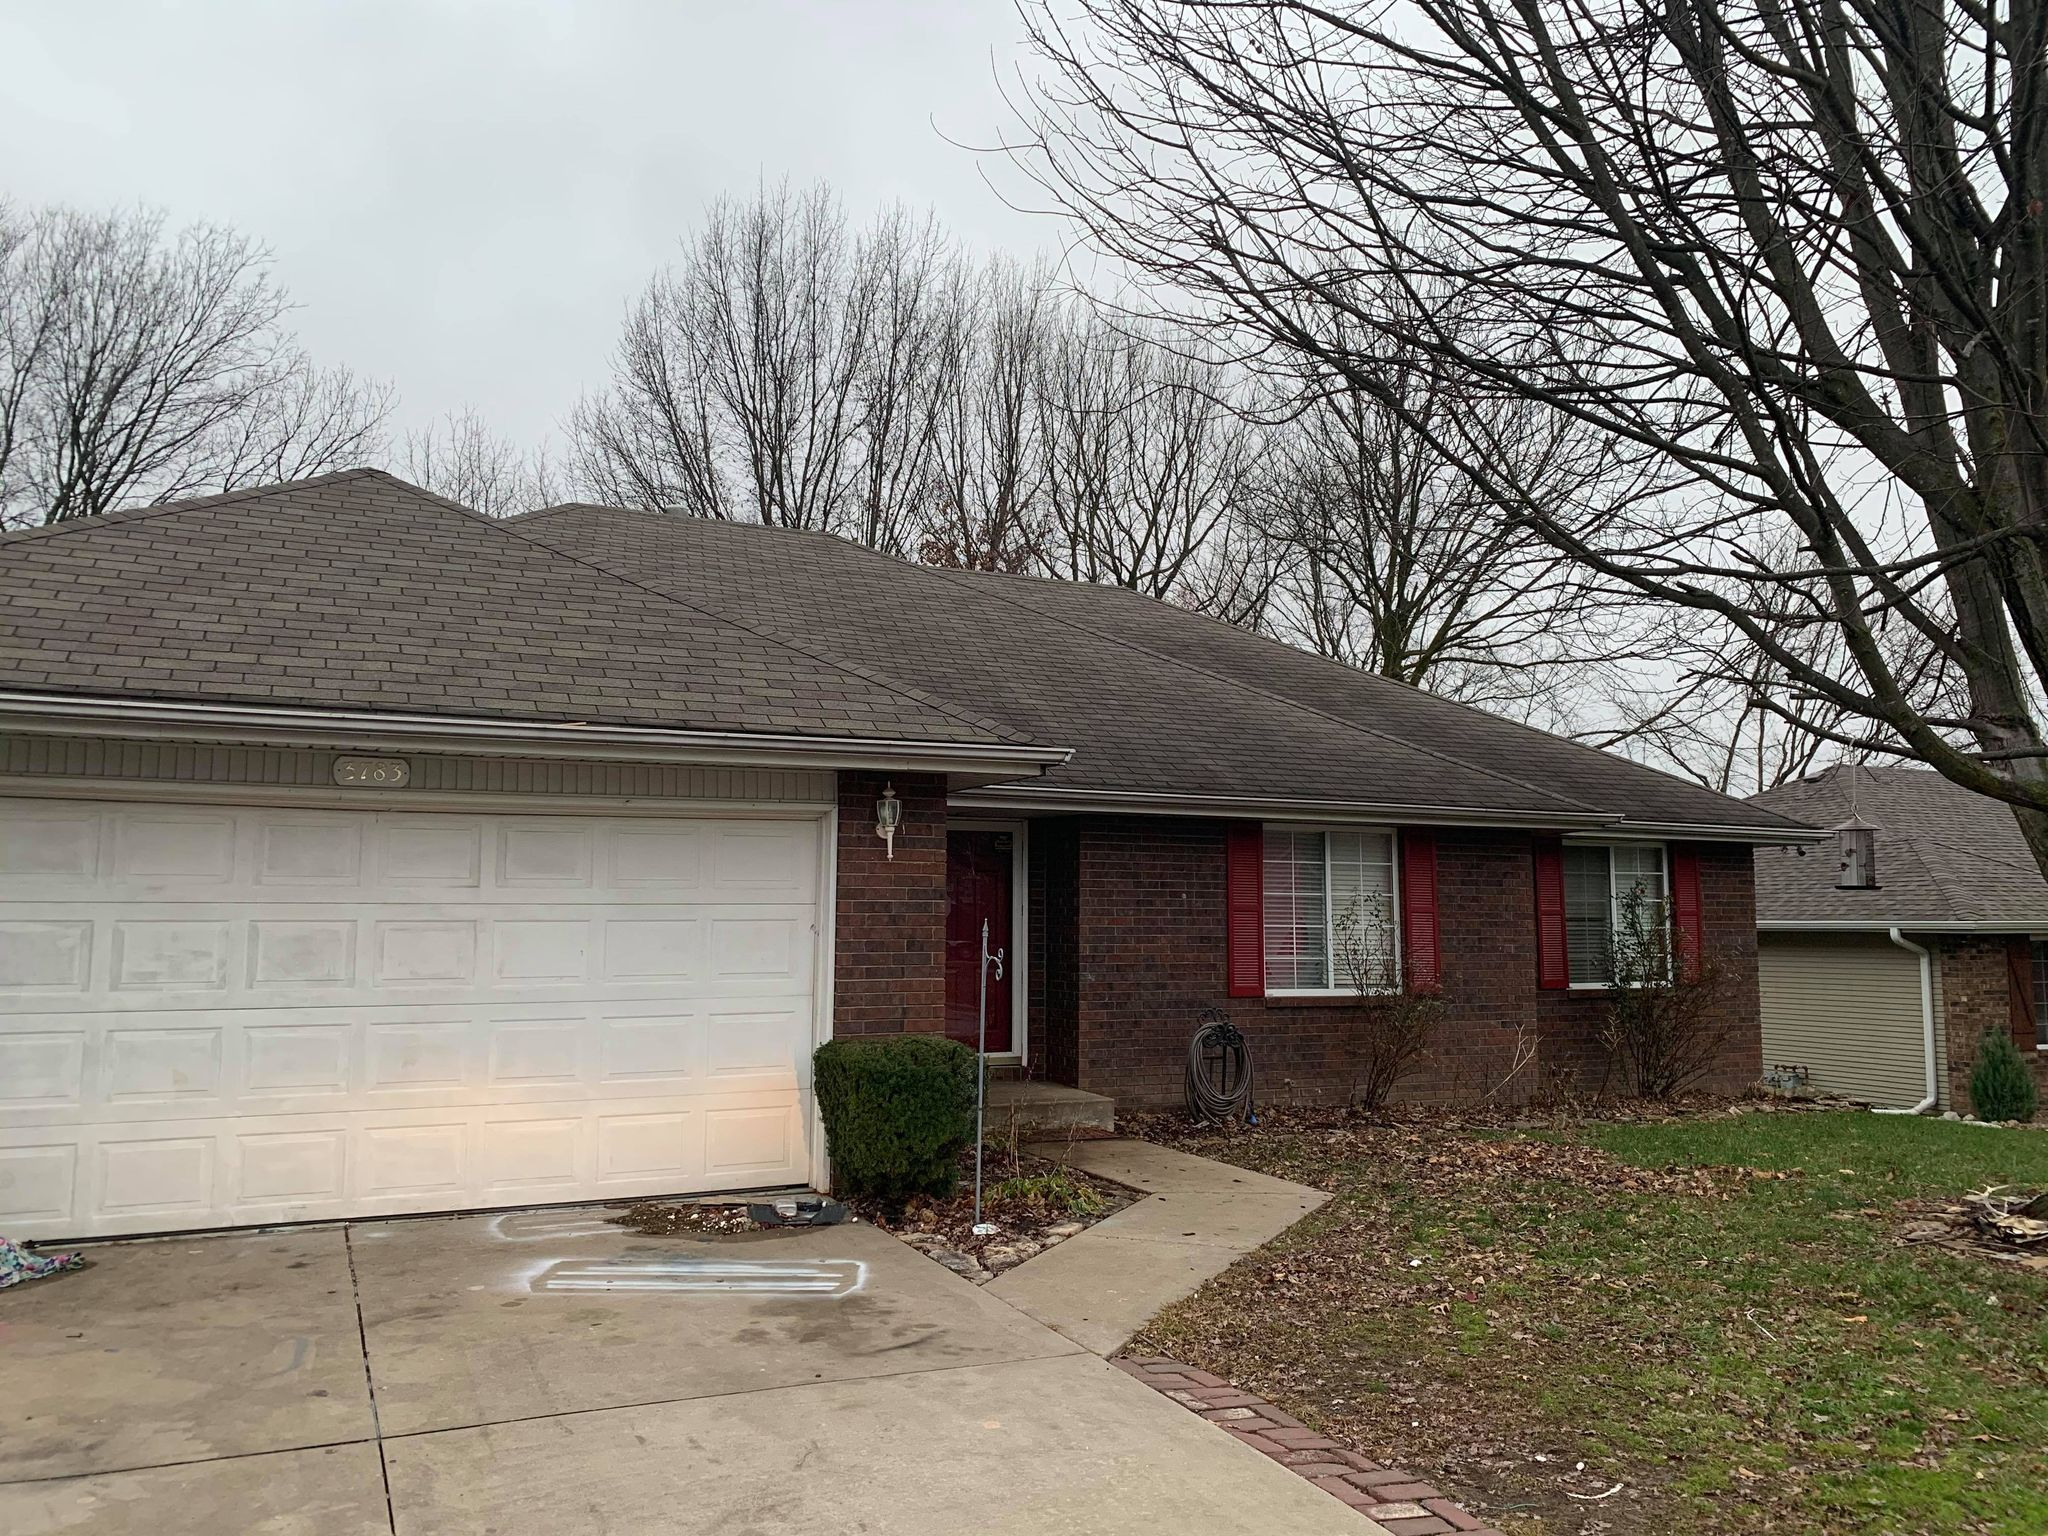 3783 S Leawood Ave, Springfield, MO